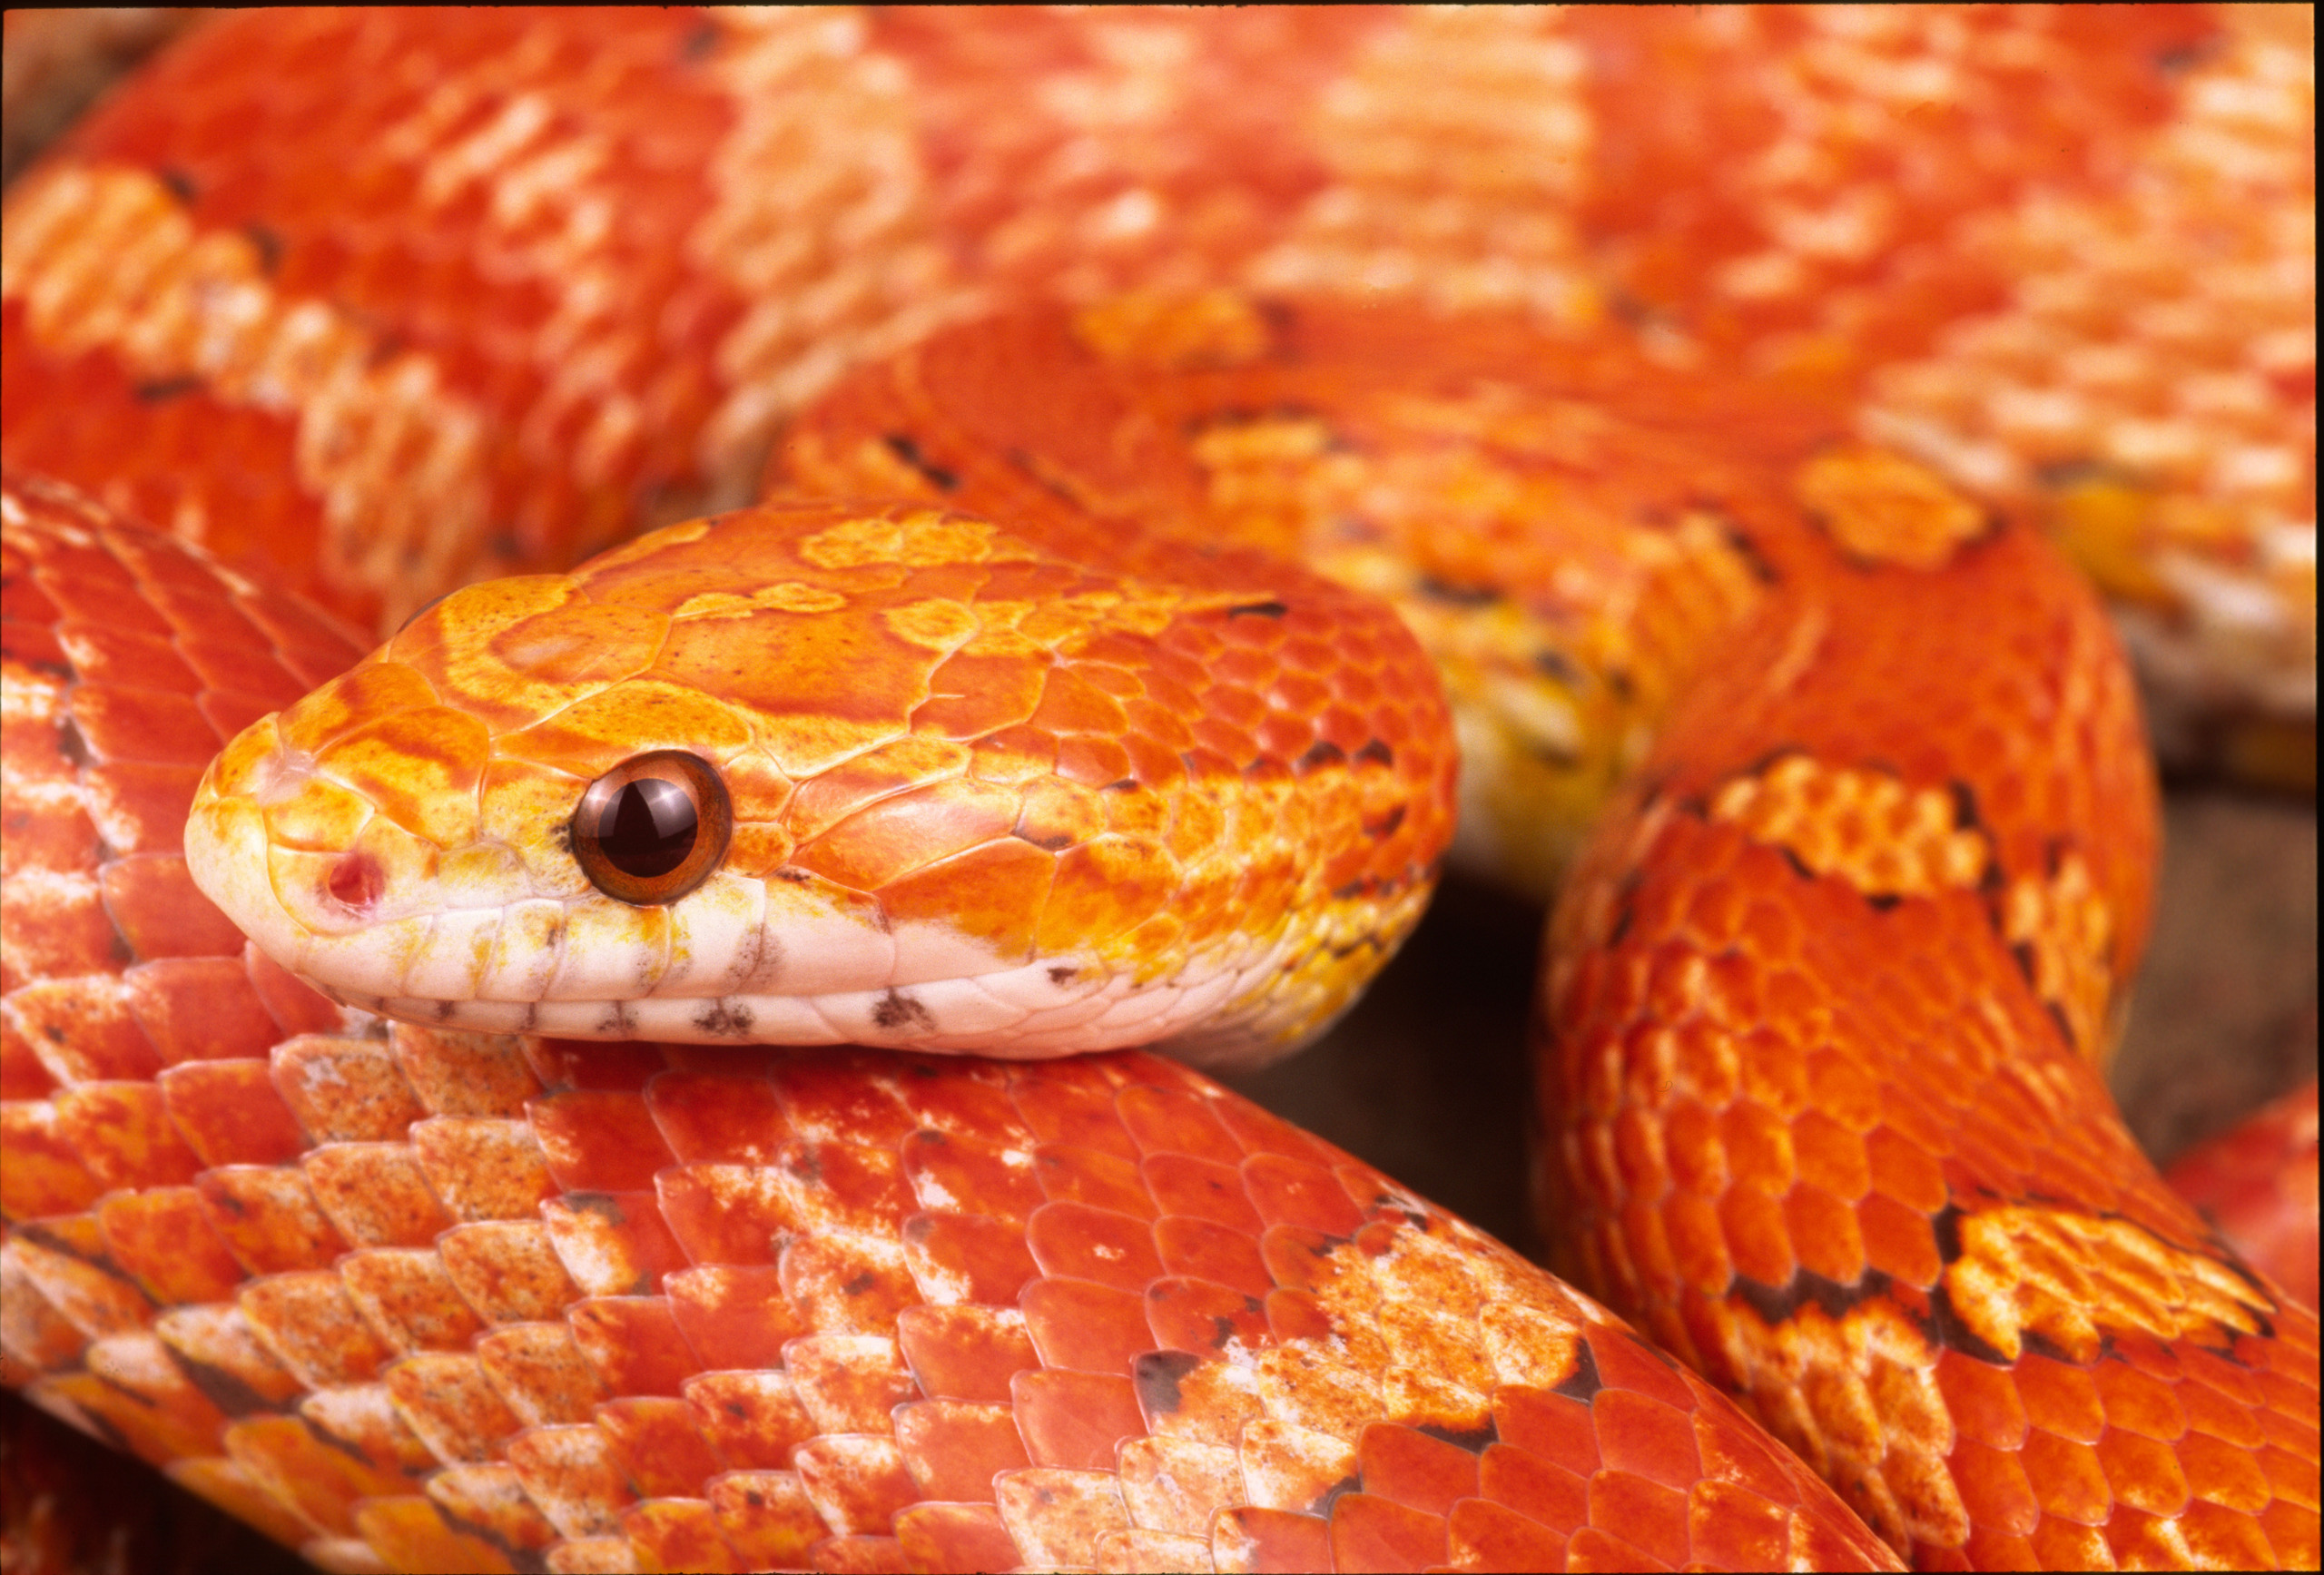 Snakes Images Corn Sake HD Wallpaper And Background Photos